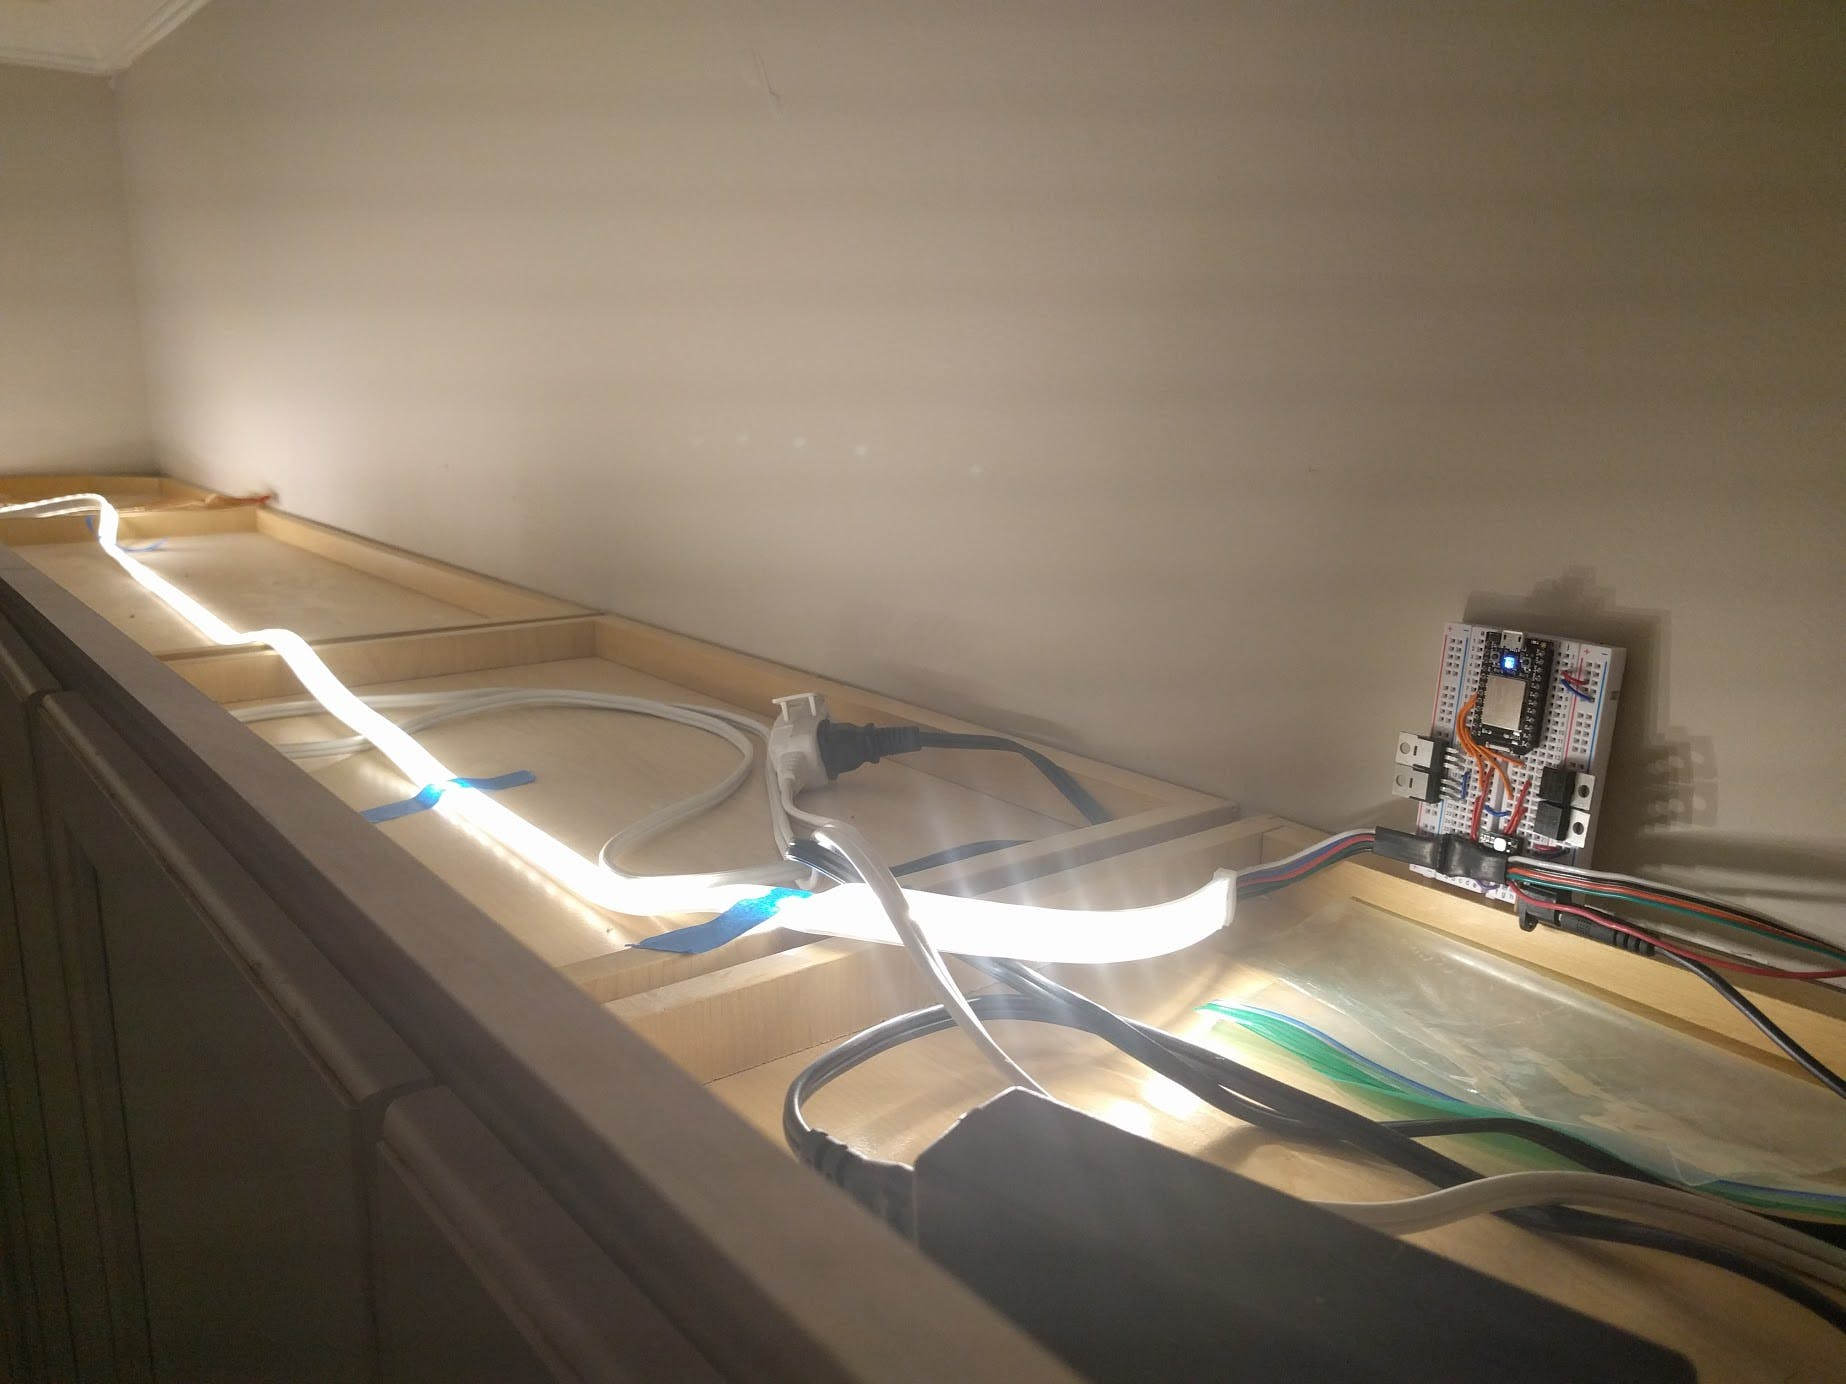 with the LED strip showing (all white in this picture)